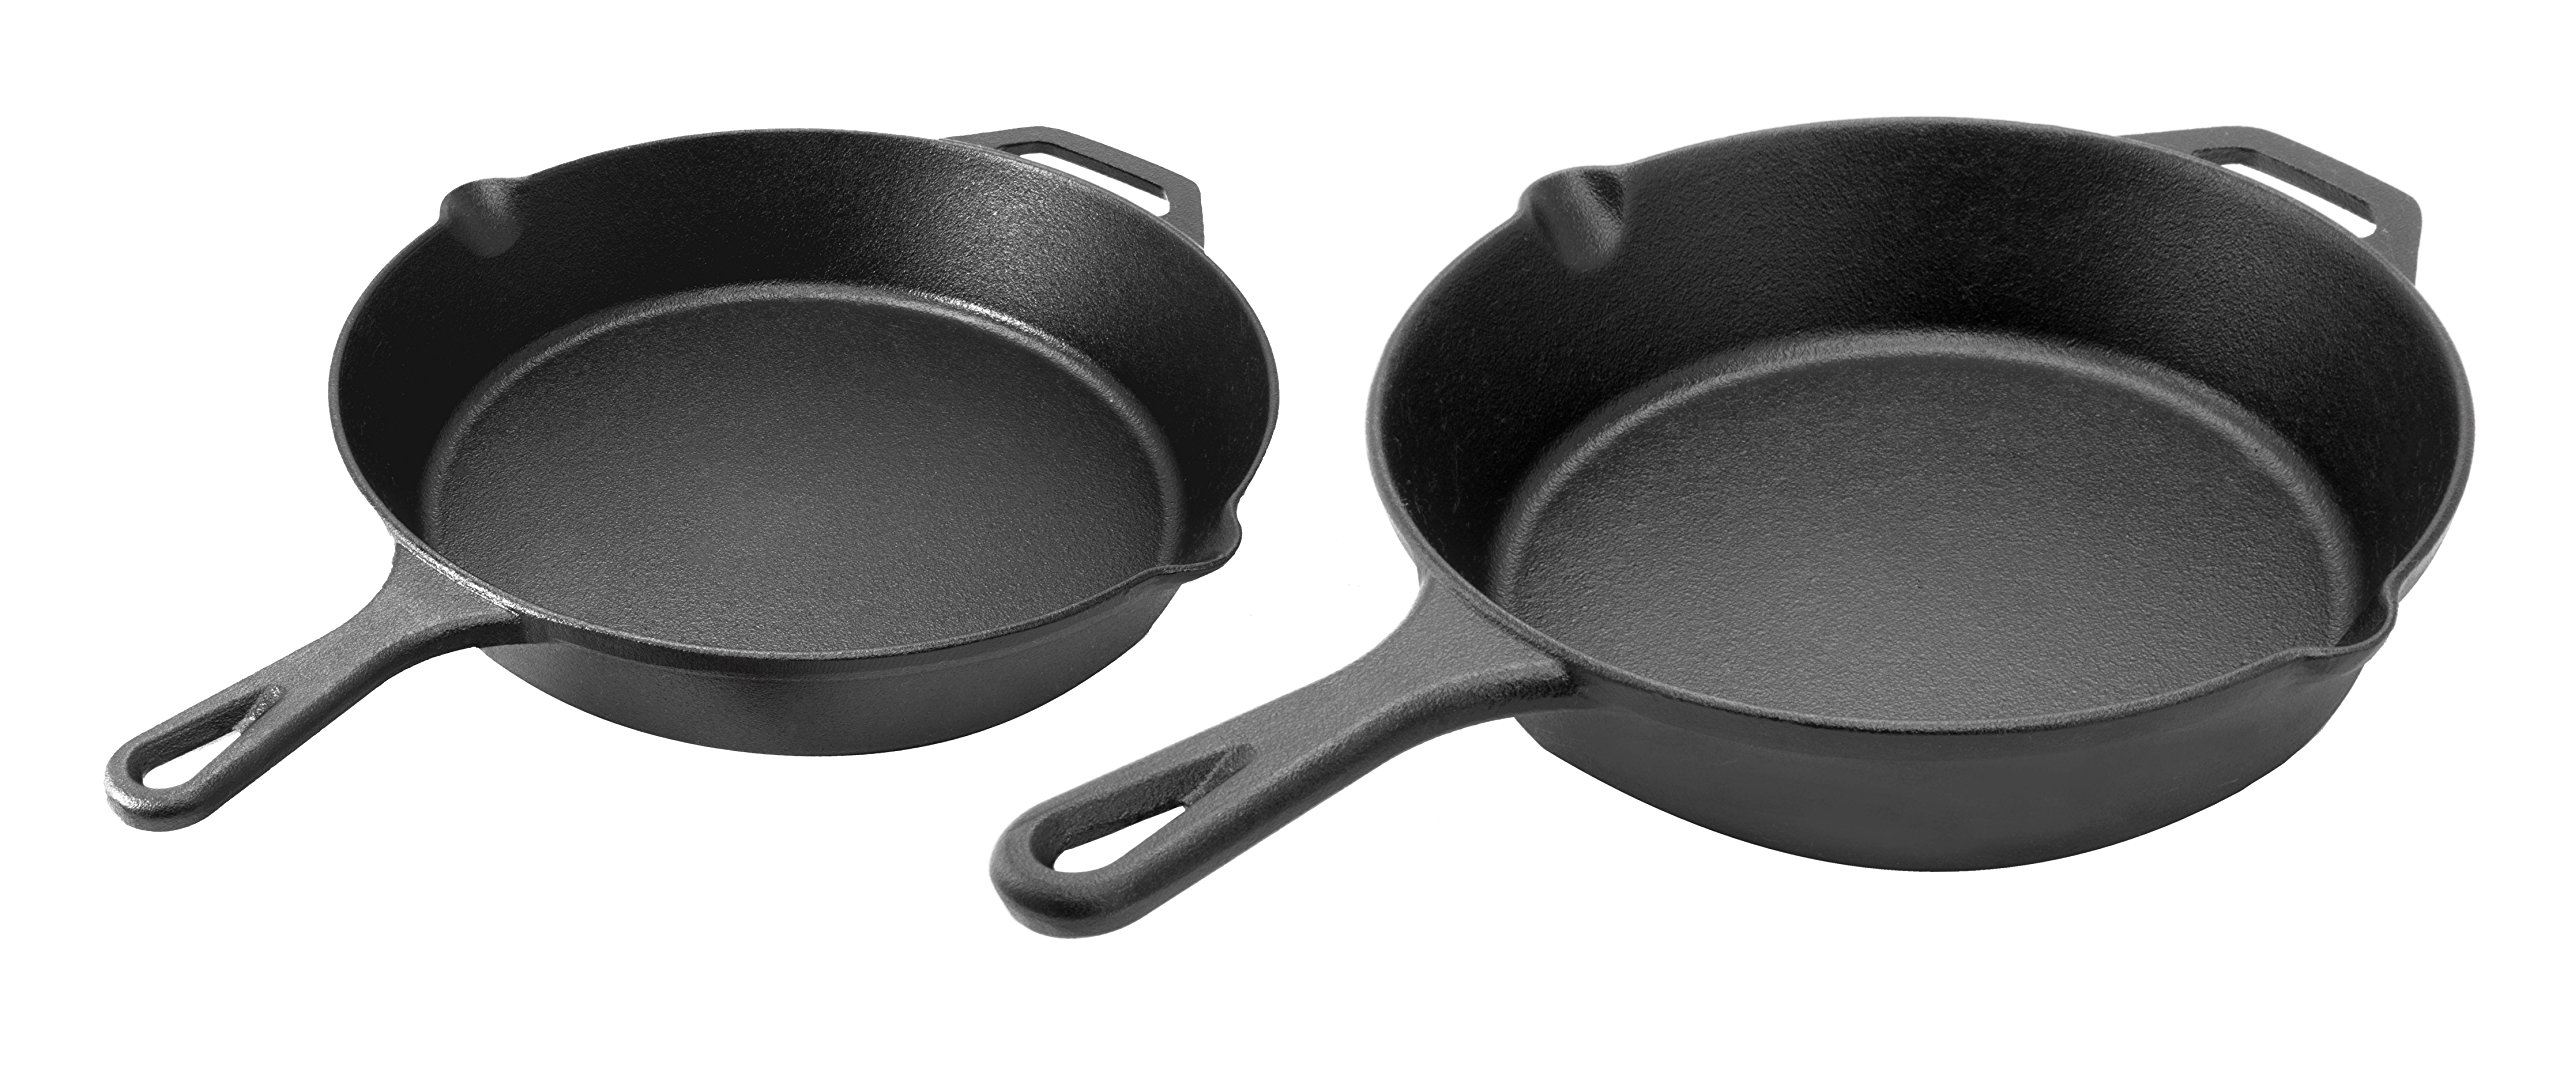 Pre-Seasoned Cast Iron Skillet 2-Piece Set (10-Inch and 12-Inch) Oven Safe Cookware | 2 Heat-Resistant Holders | Indoor and Outdoor Use | Grill, Stovetop, Induction Safe by cuisinel (Image #2)